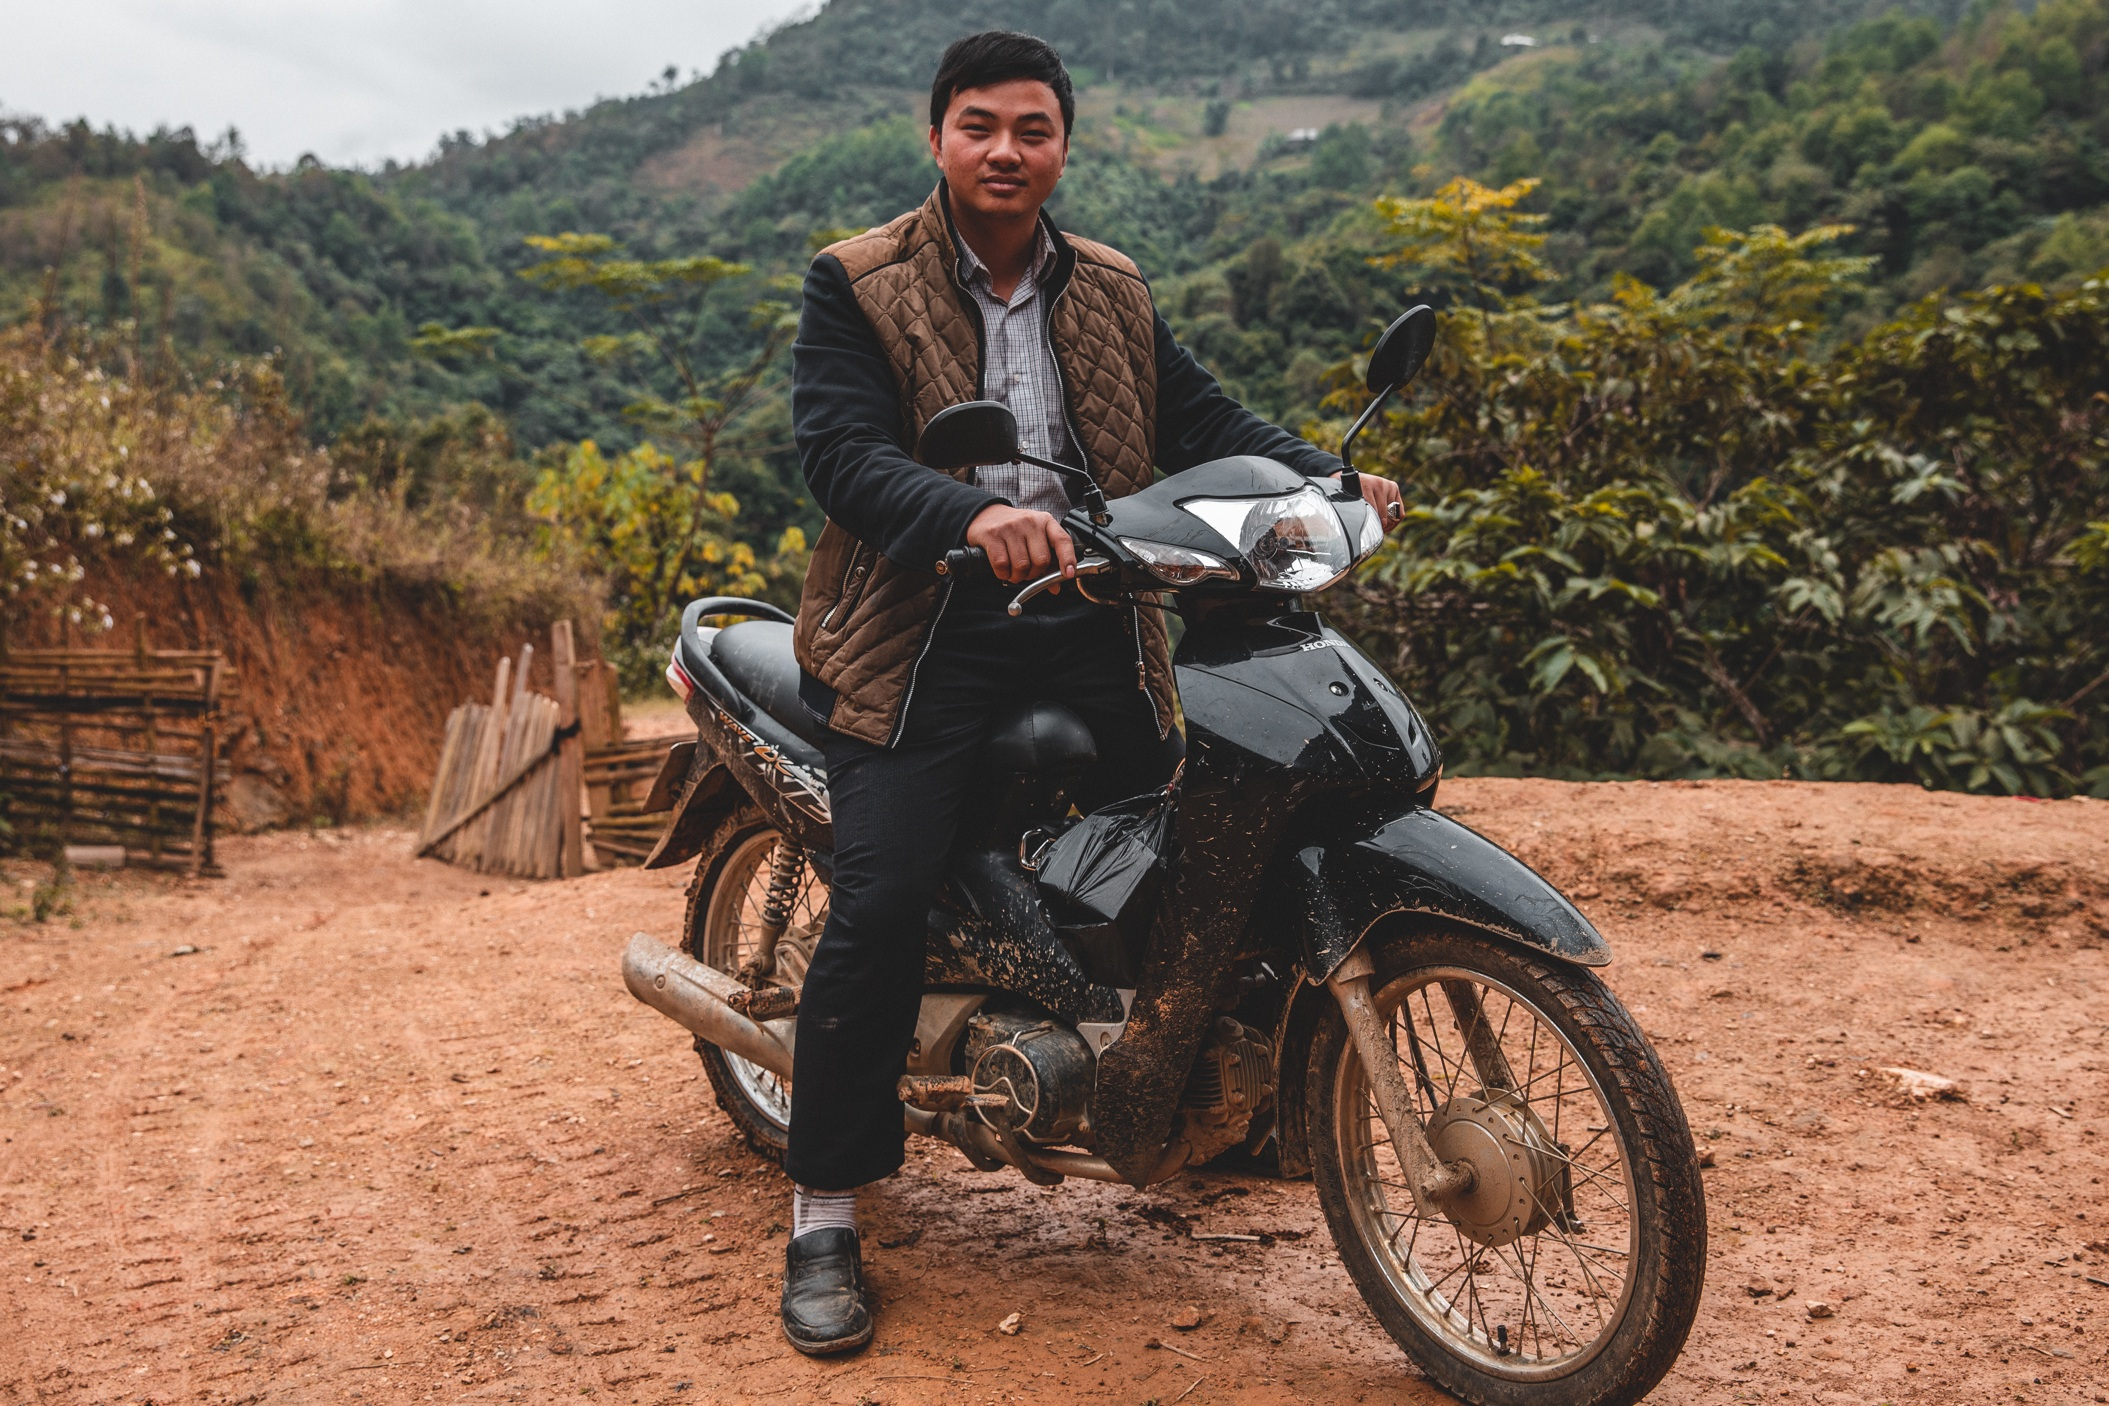 MOTORCYCLES - One of the biggest hurdles church planters face in Vietnam is the mountainous terrain isolating unreached villages. Motorcycles help pastors reach more villages with the gospel. You provided this motorcycle to this pastor and he was able to reach three new villages with the gospel.